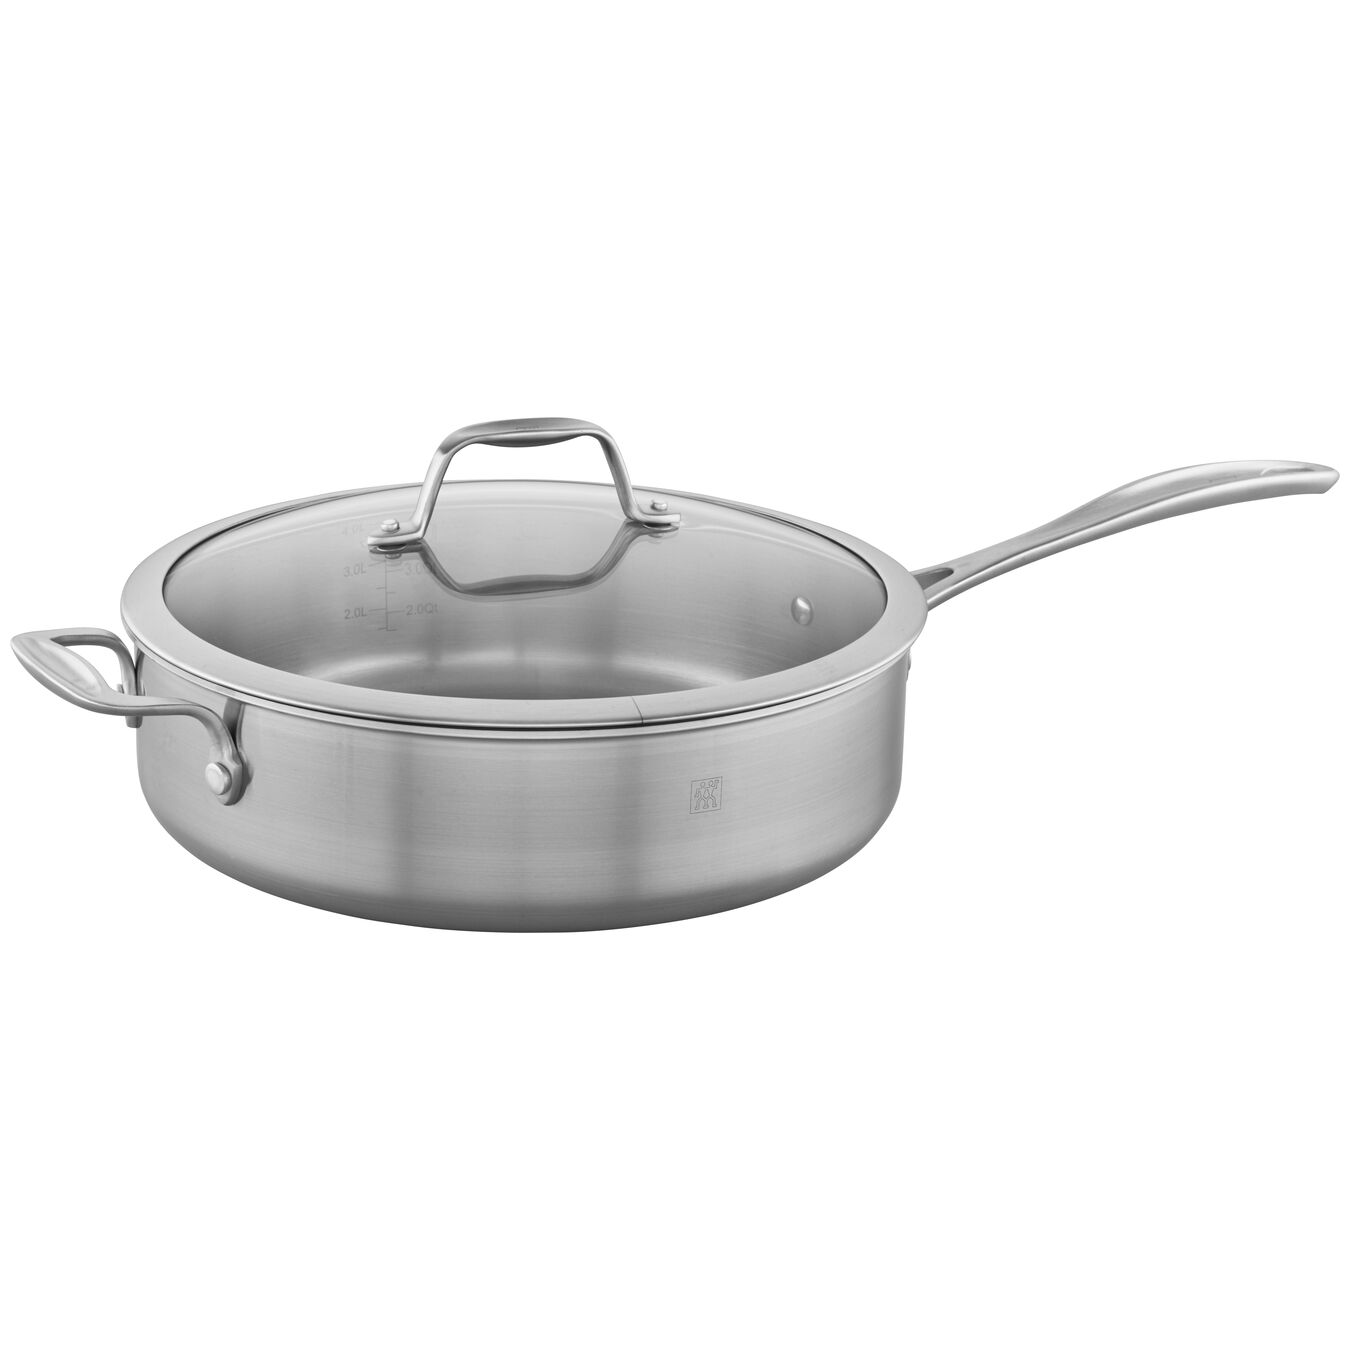 3-ply 5-qt Stainless Steel Saute Pan,,large 1